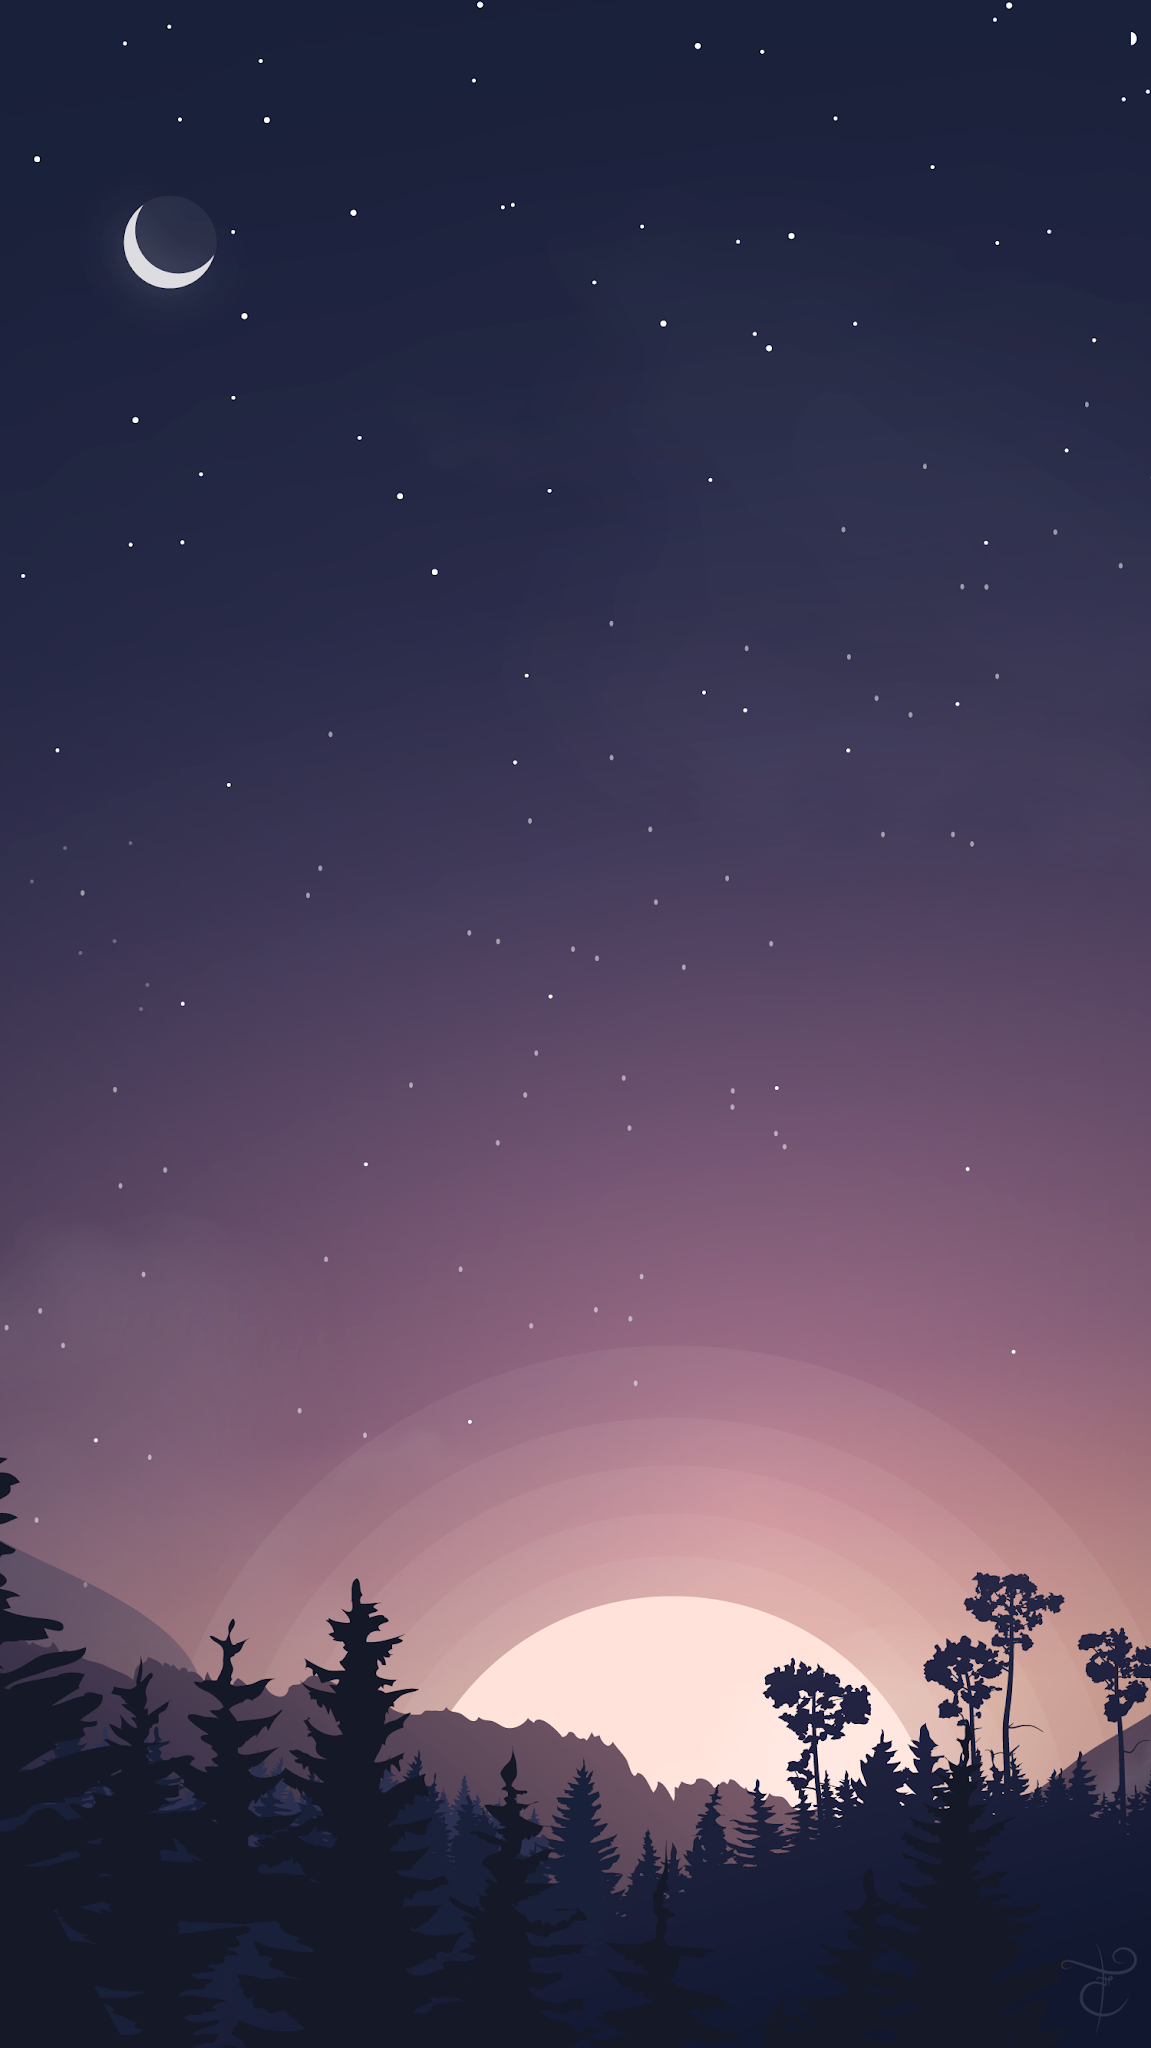 night landscape illustration mobile background wallpaper beautiful hd